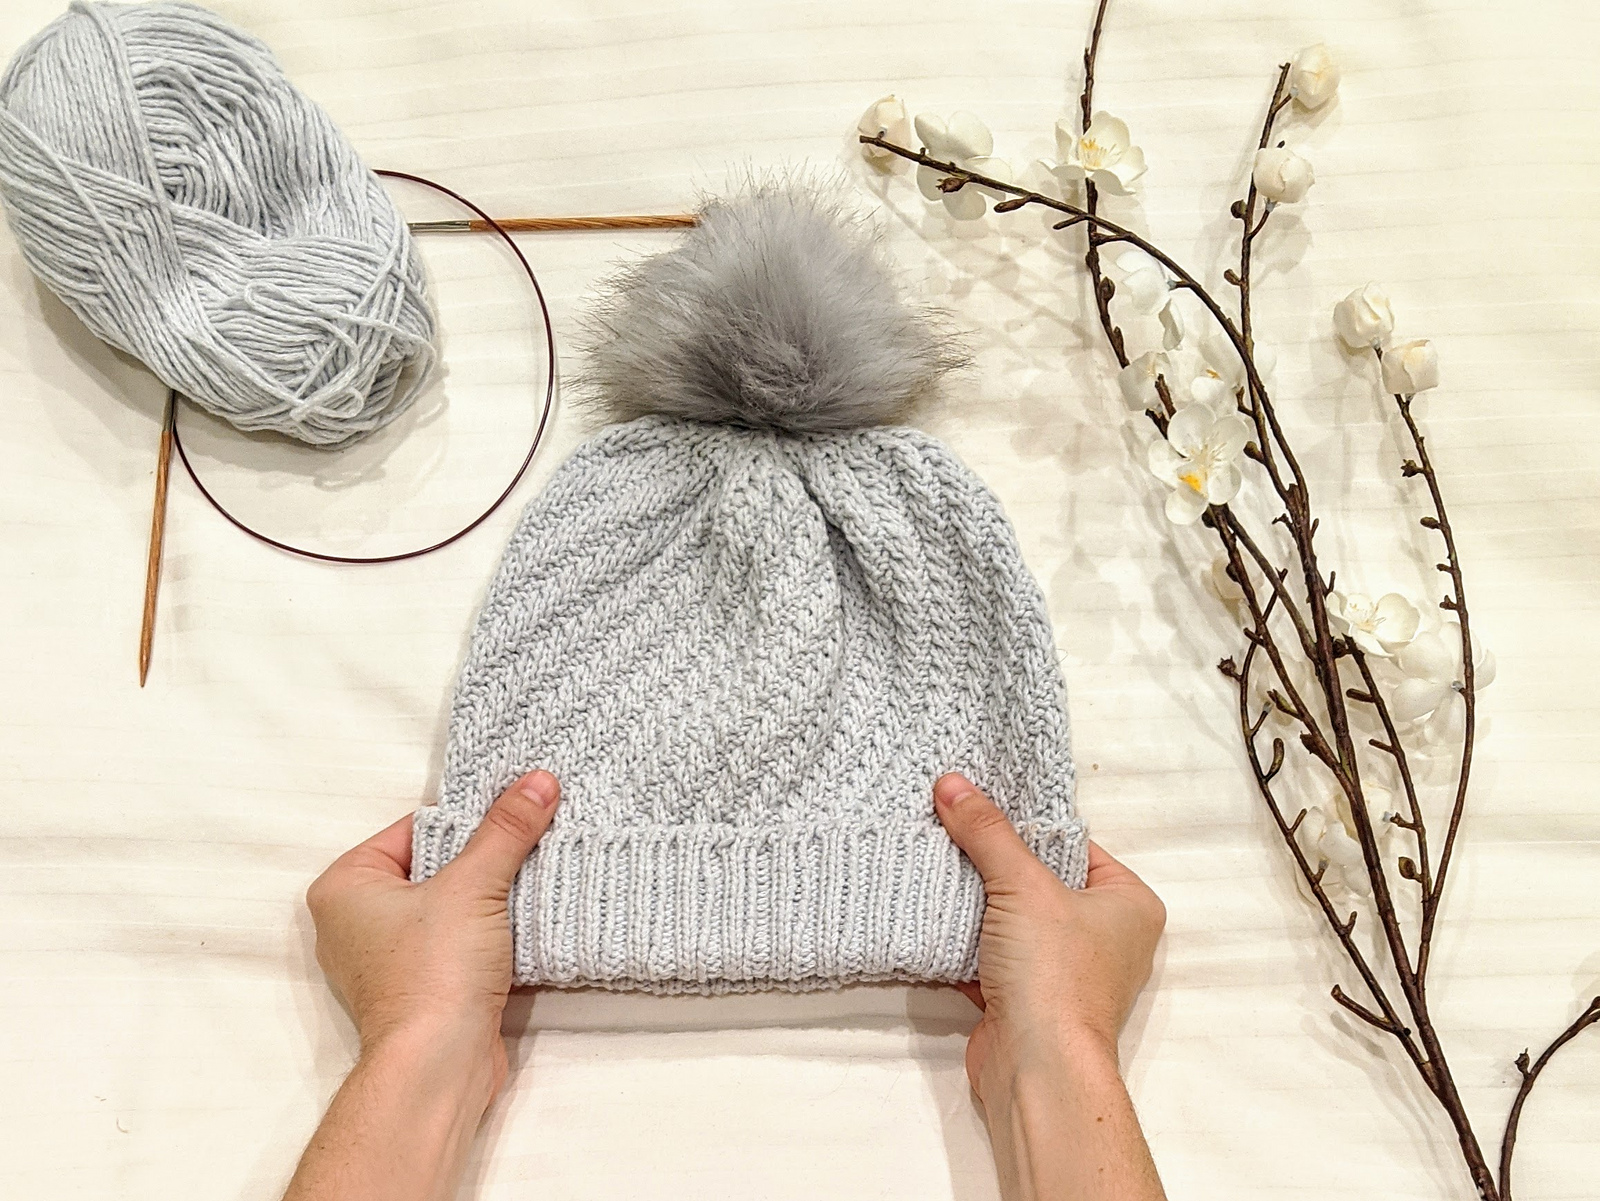 knit hat with using diagonal rib stitch in the round and rib knit brim.